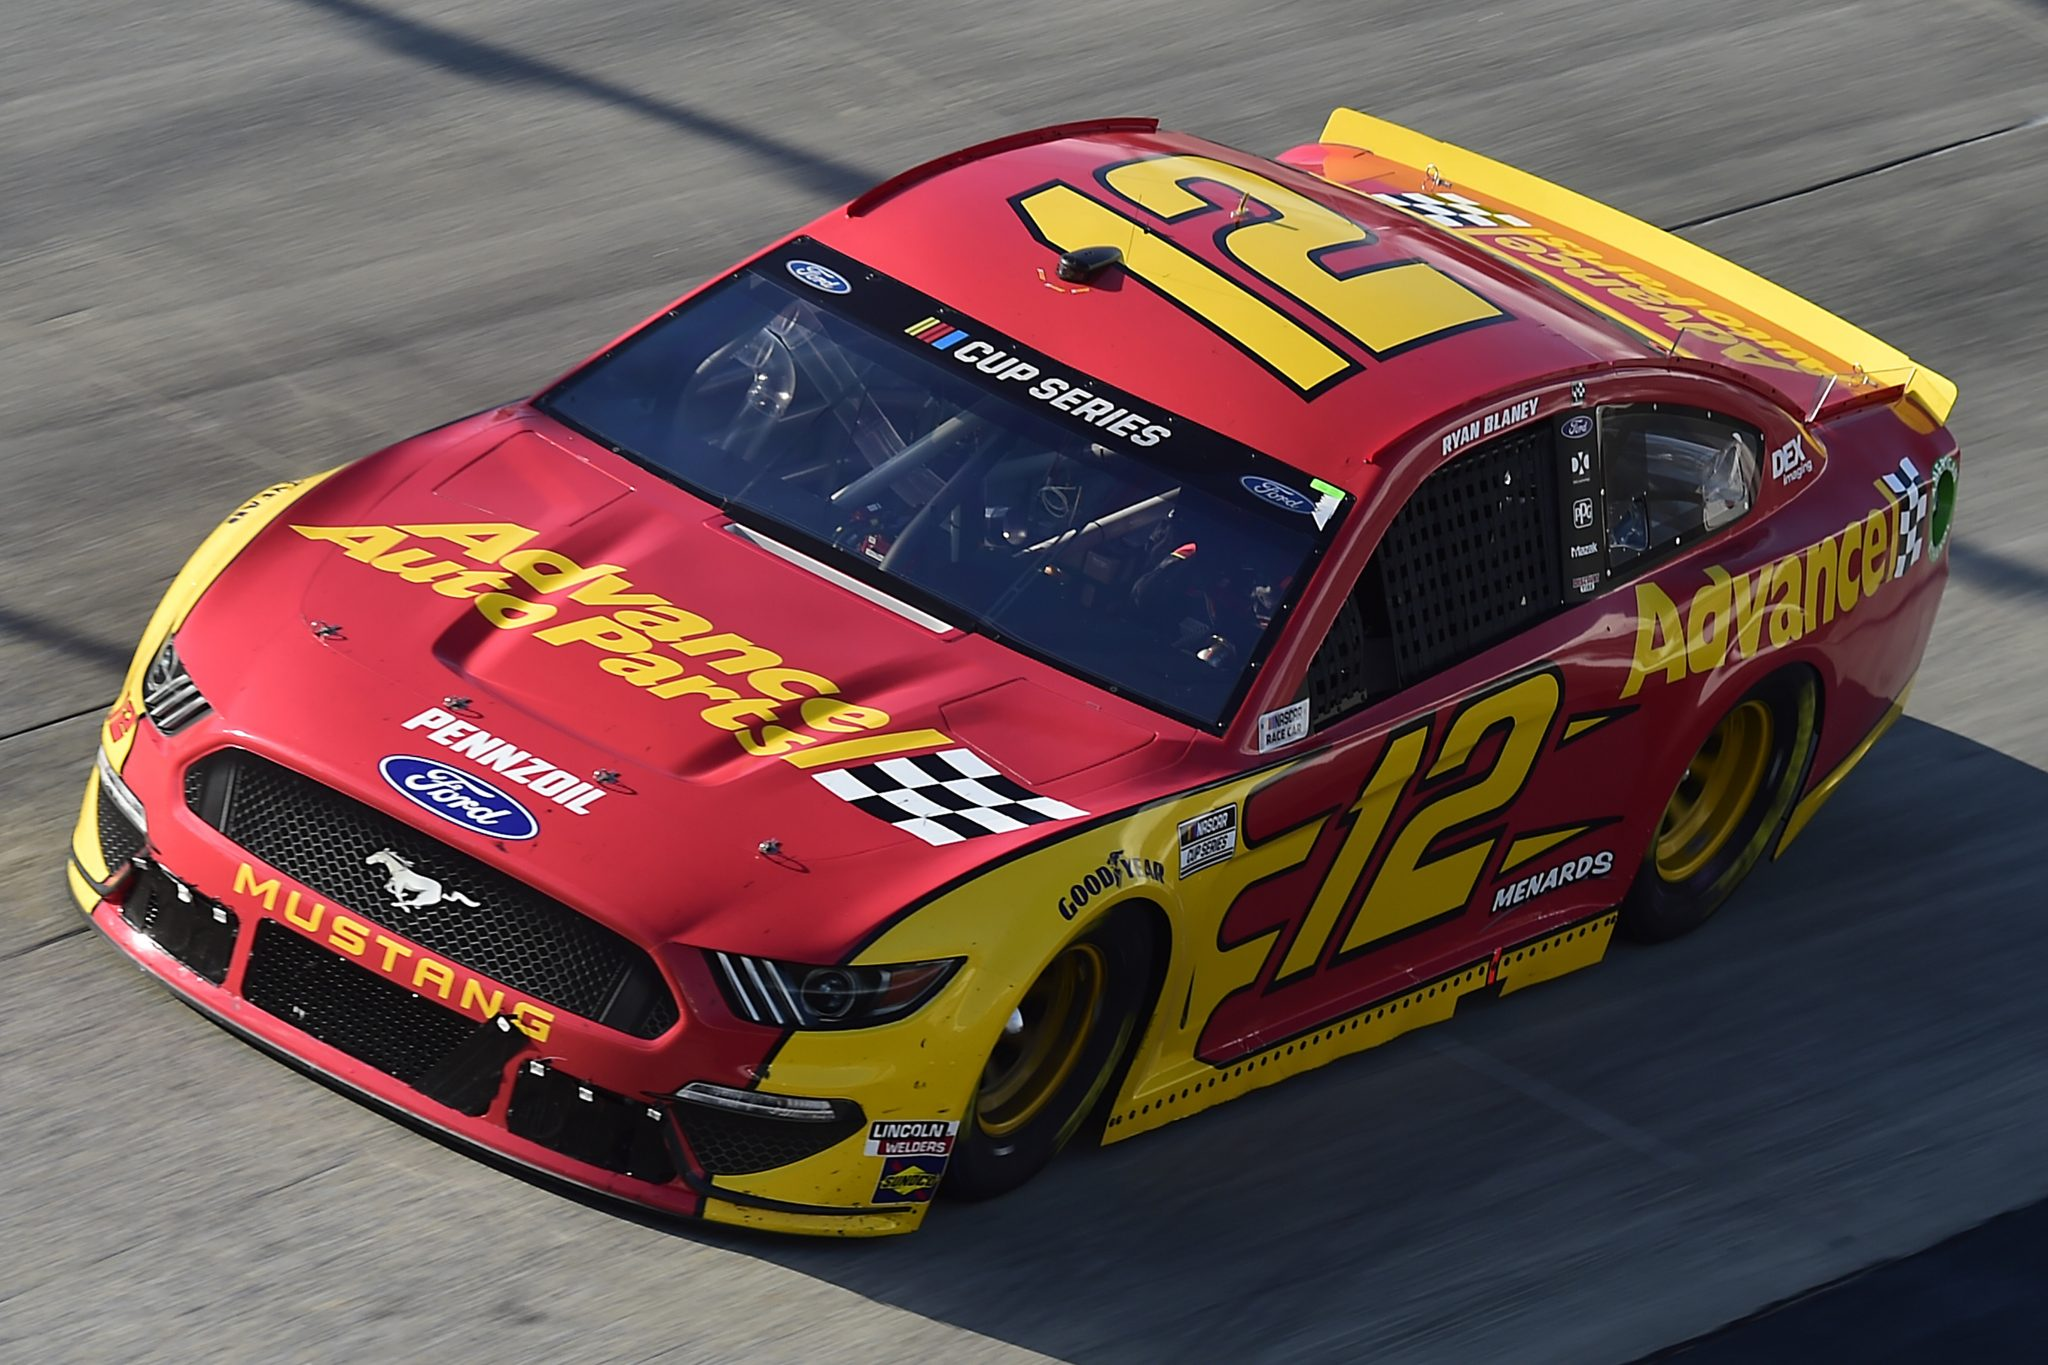 DOVER, DELAWARE - AUGUST 23: Ryan Blaney, driver of the #12 Advance Auto Parts Ford, drives during the NASCAR Cup Series Drydene 311 at Dover International Speedway on August 23, 2020 in Dover, Delaware. (Photo by Jared C. Tilton/Getty Images) | Getty Images